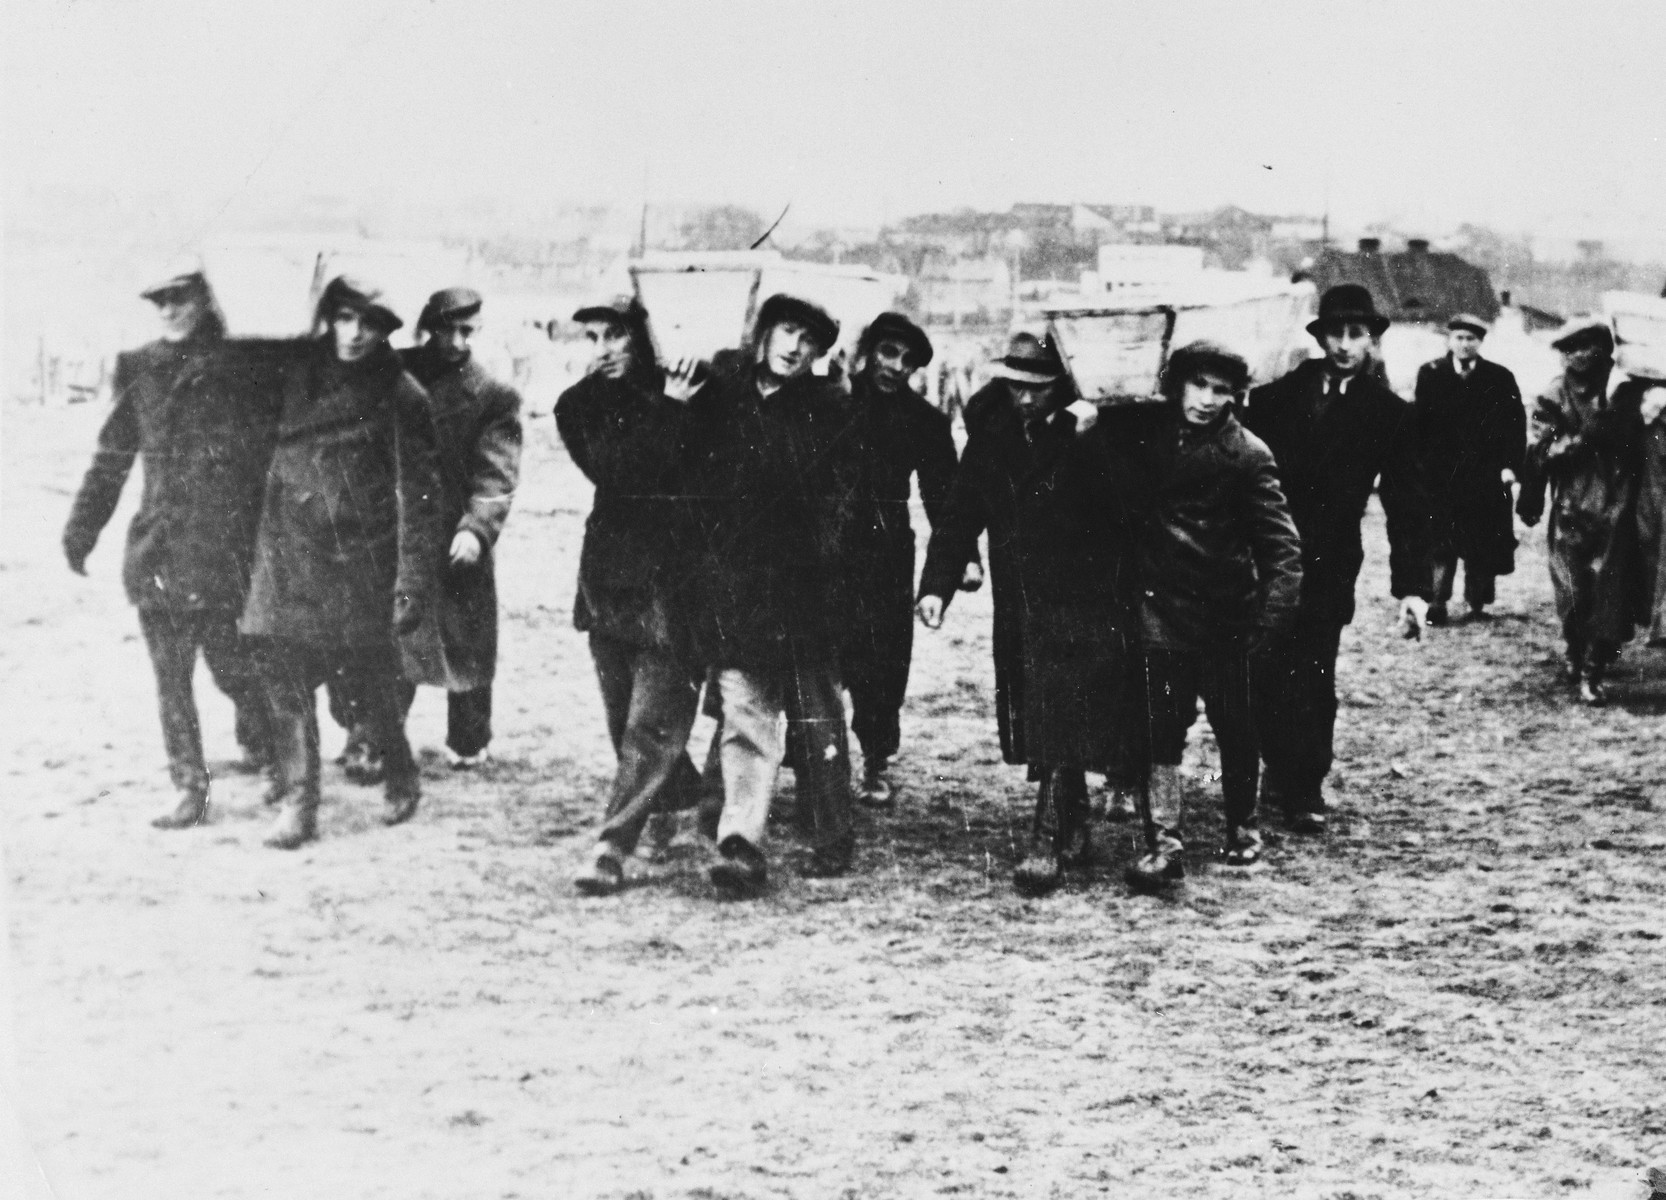 Pallbearers carrying the the victims of the Kielce pogrom, transport the coffins from trucks to the burial site in the Jewish cemetery.